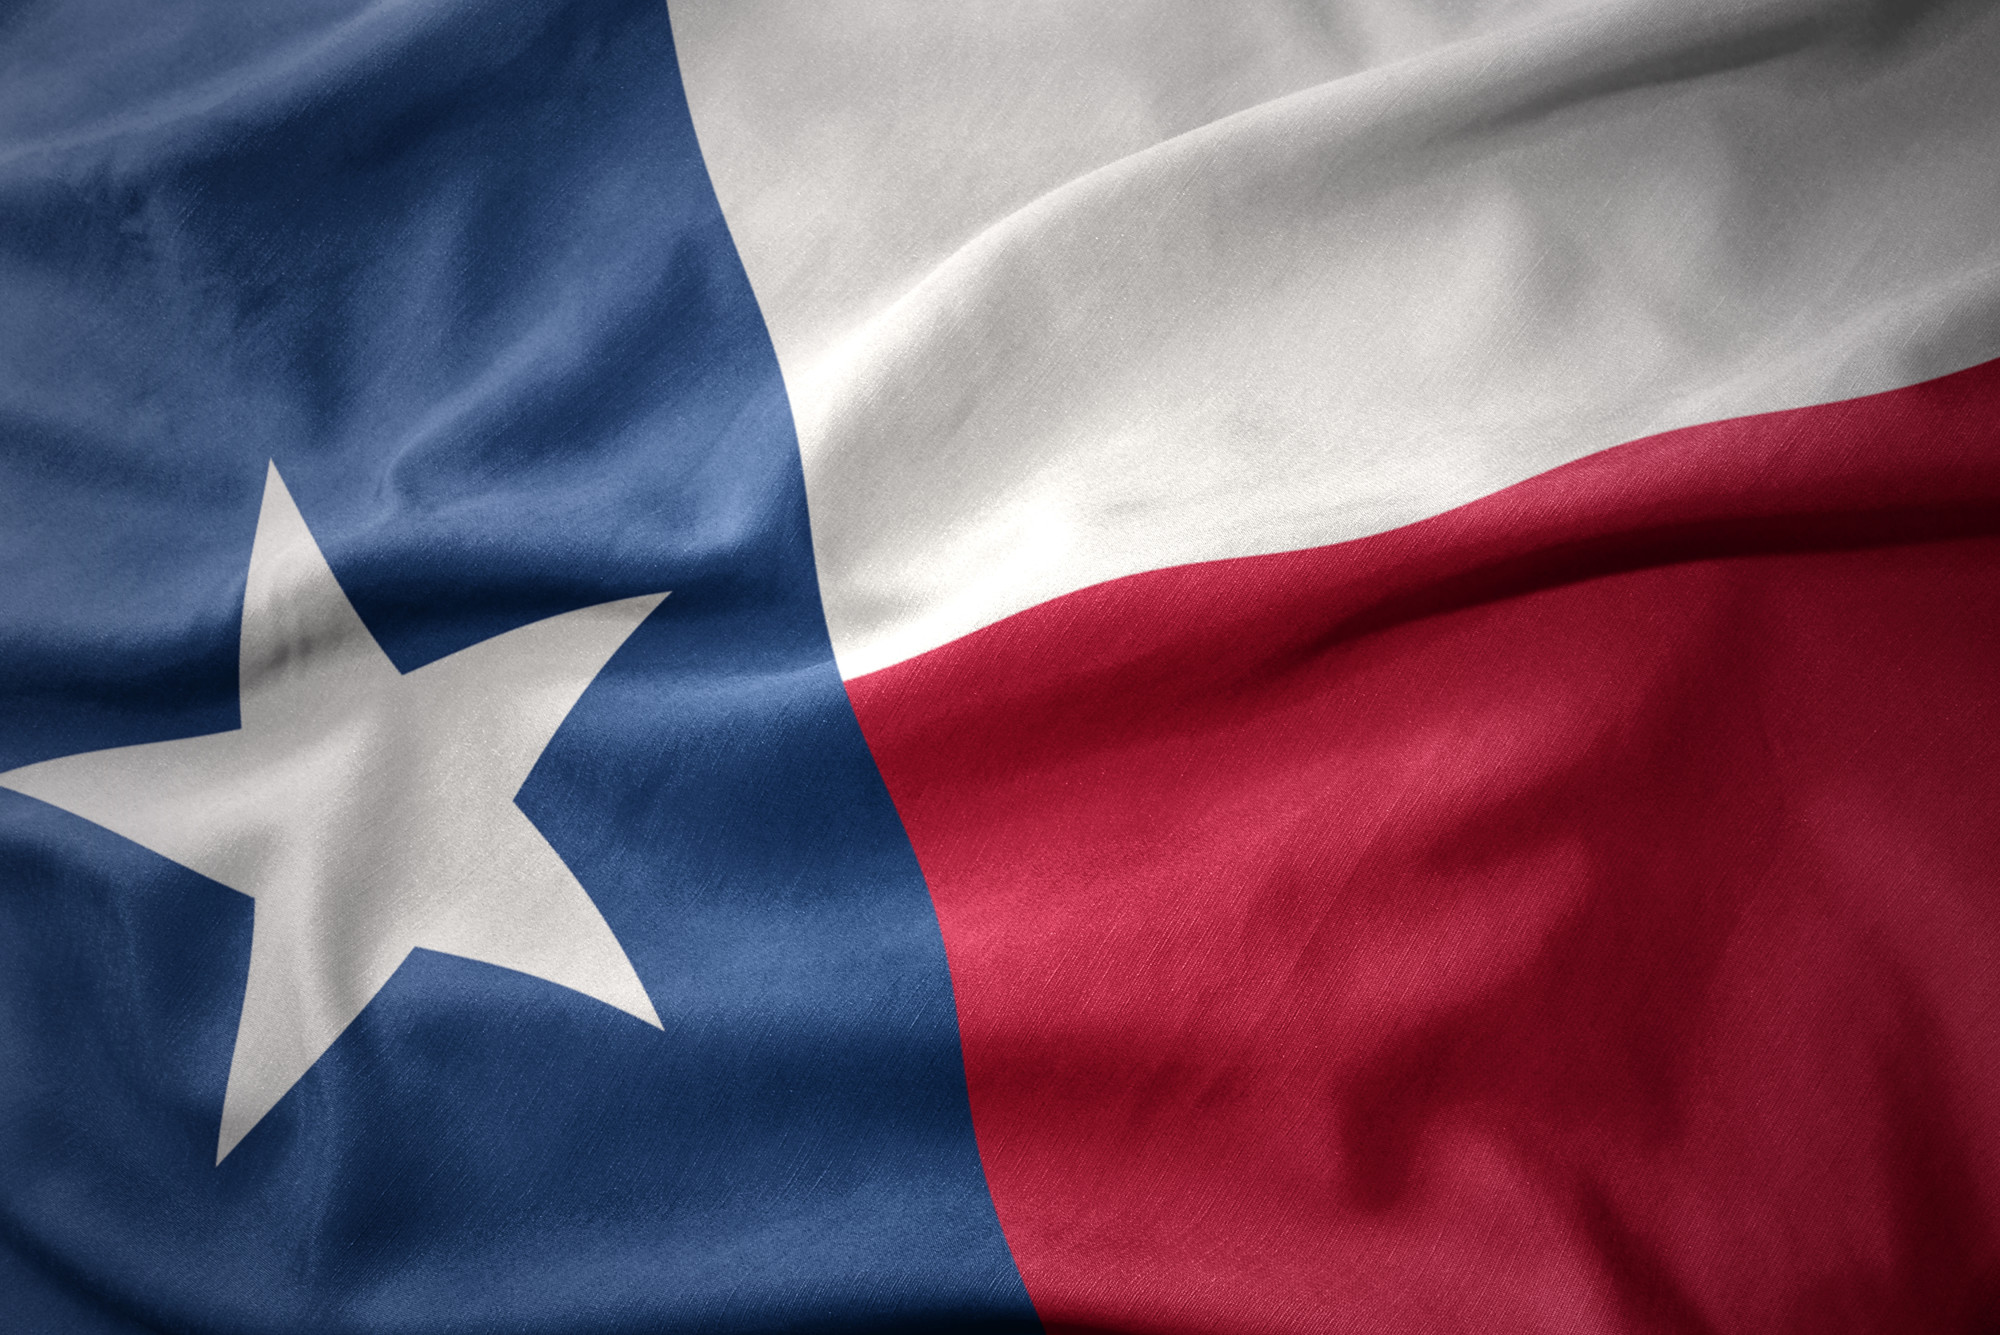 5 DWI Penalties to Expect When Charged With a DWI Offense in Texas